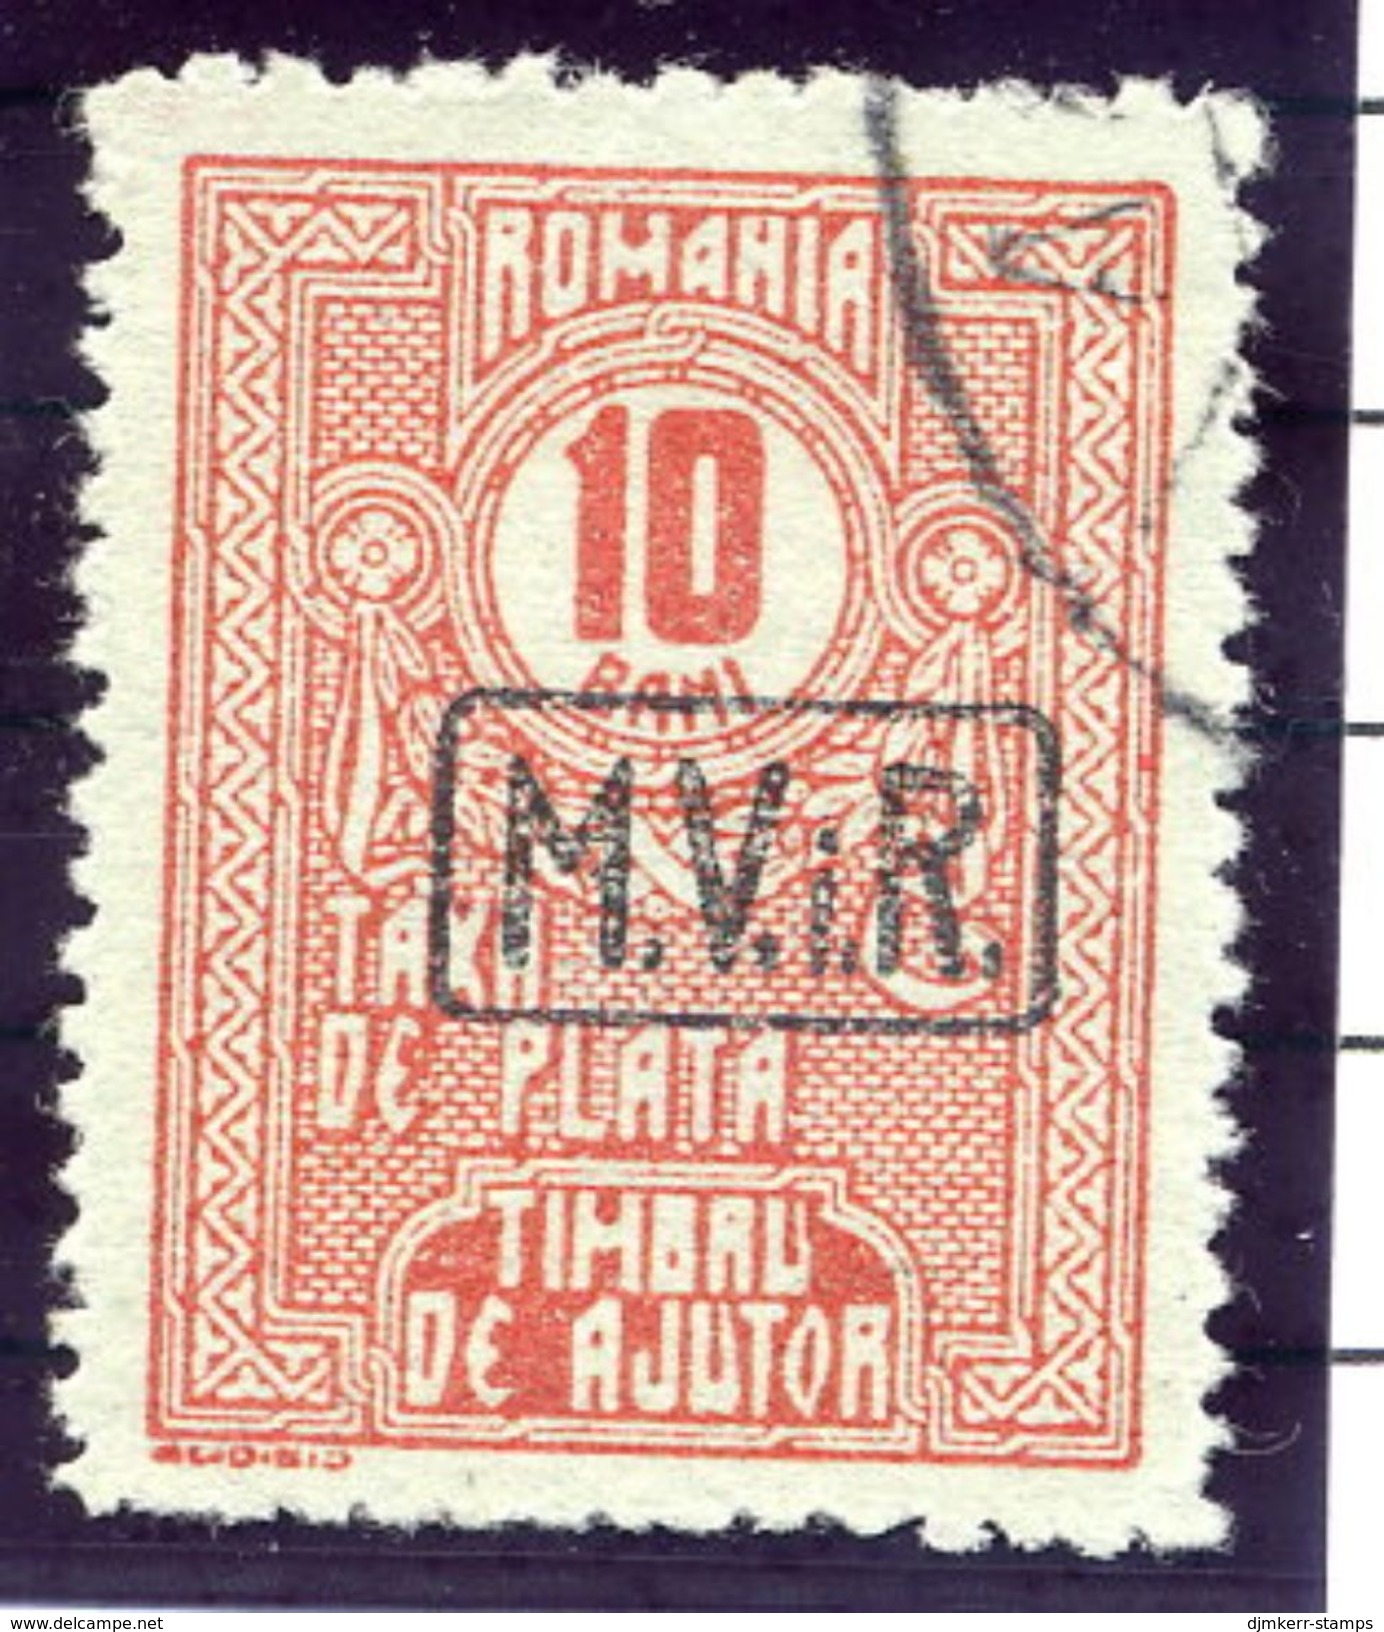 ROMANIA (MILITARY ADMINISTRATION)  1918 War Tax Due Stamp, Used.  Michel 8 - Occupation 1914-18